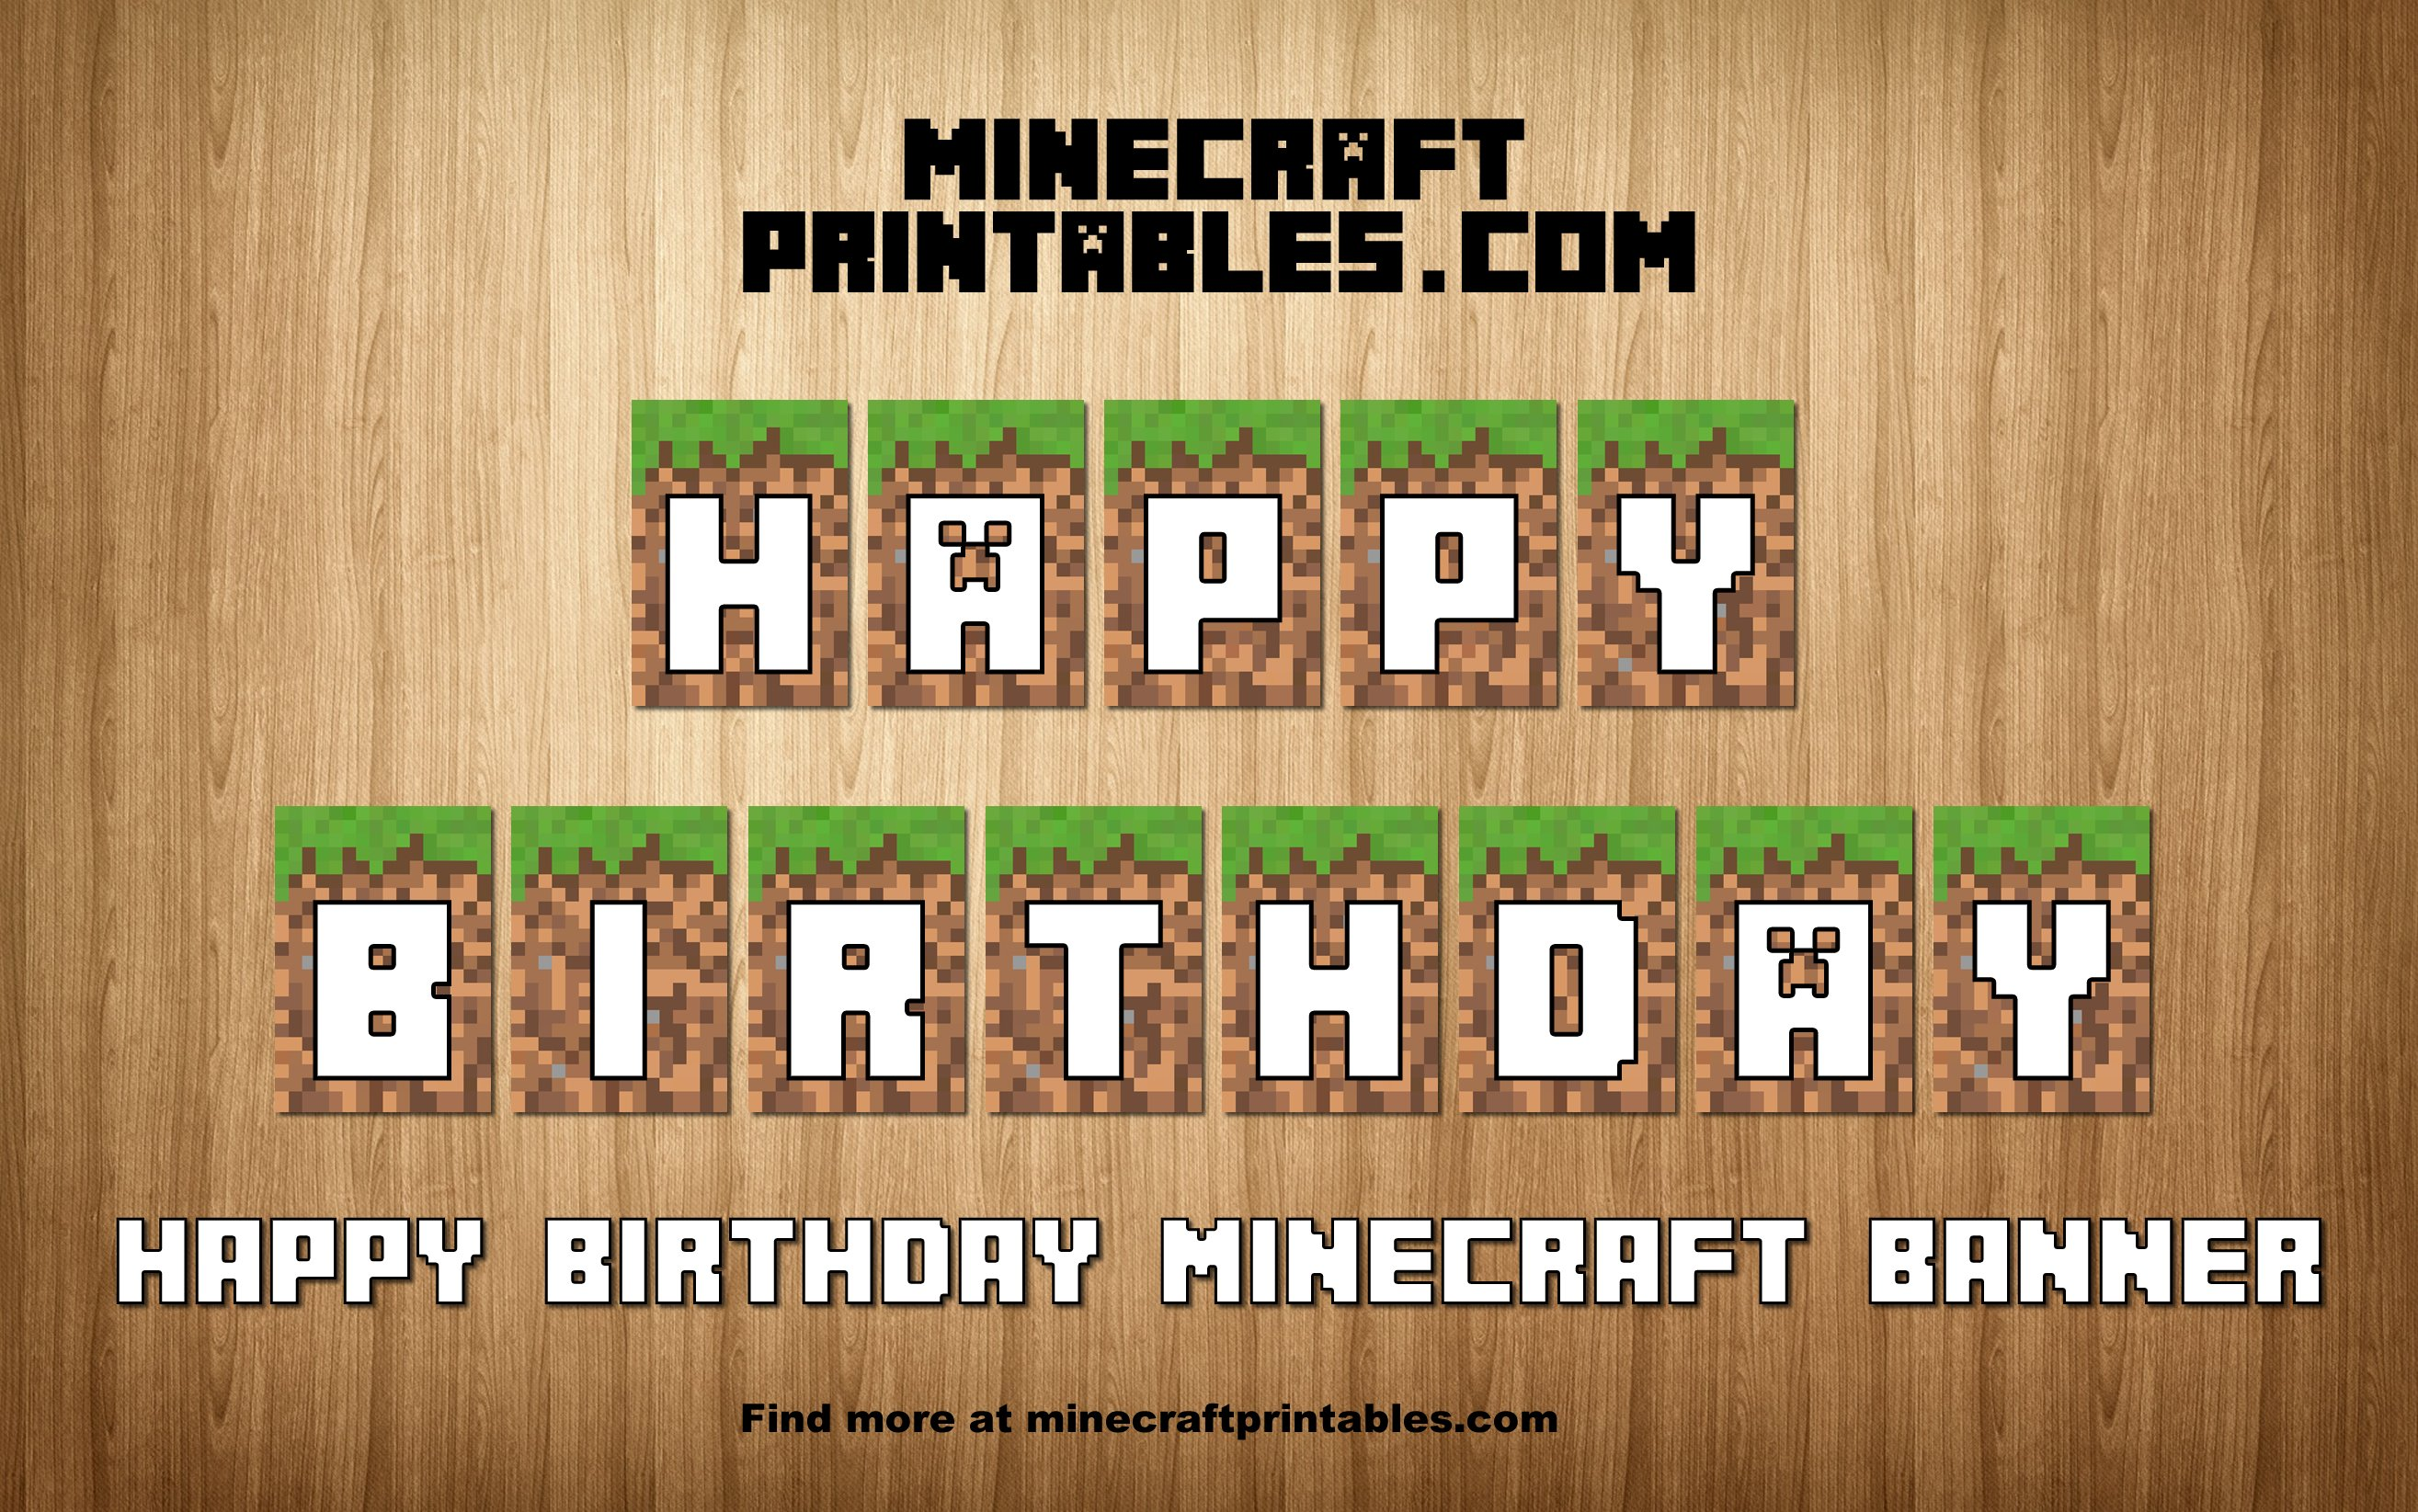 Challenger image with regard to minecraft birthday banner free printable